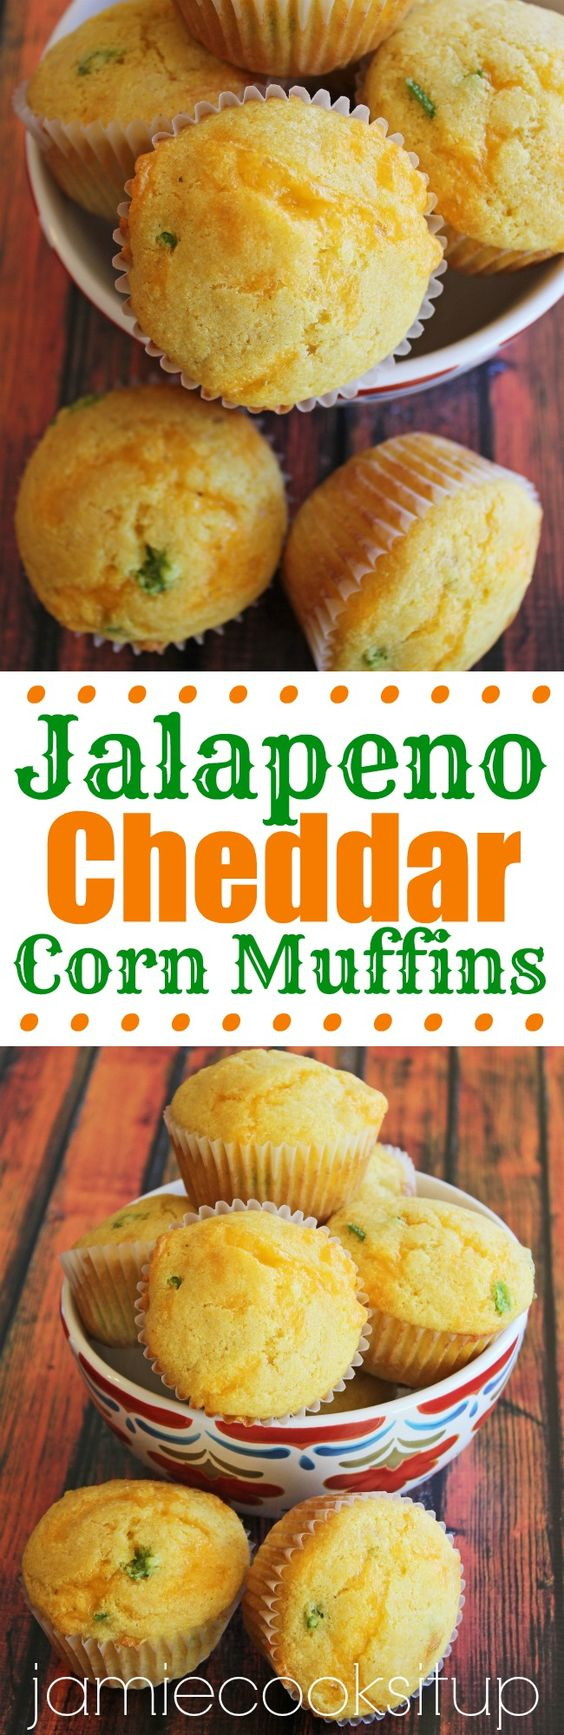 ... and more corn muffins cheddar muffins stew lamb chili spicy the o jays